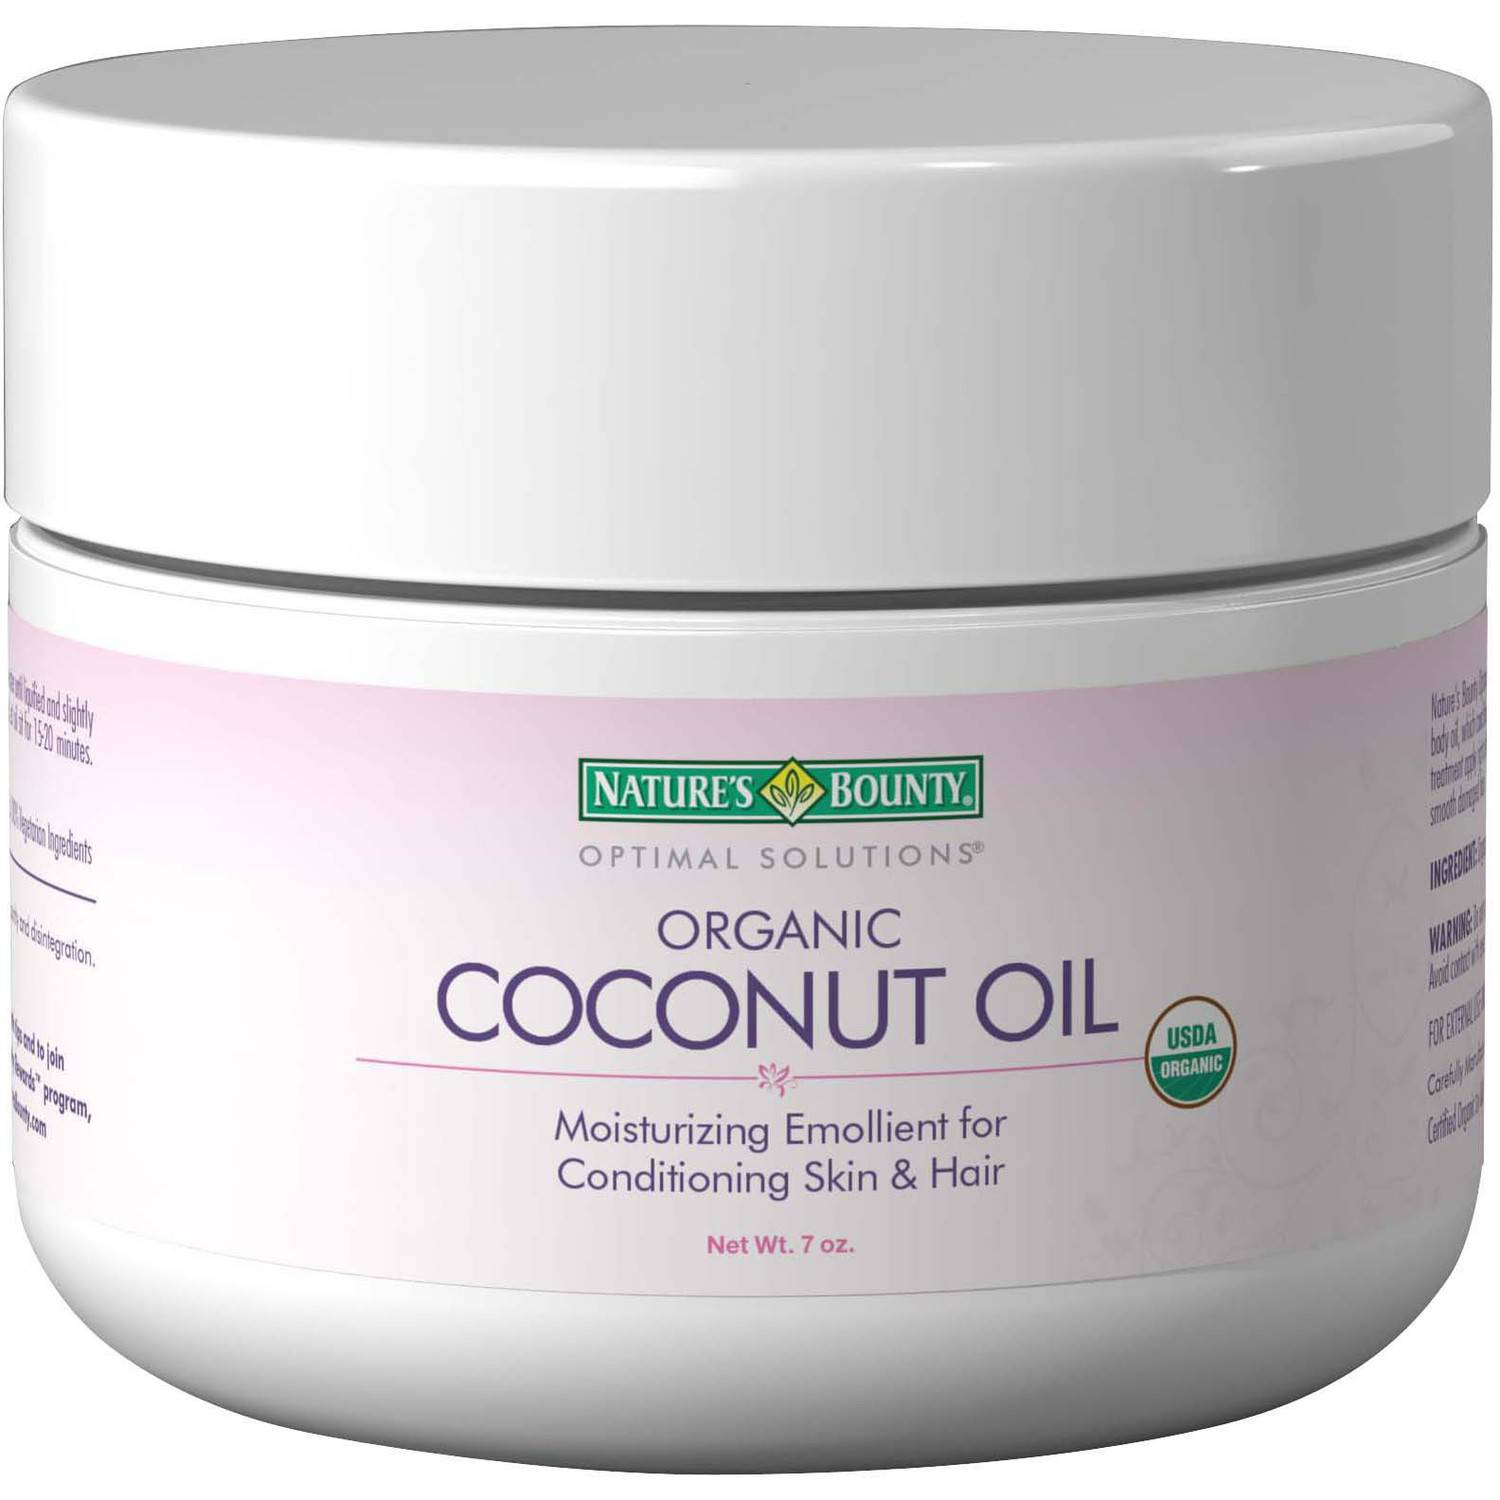 Nature's Bounty Optimal Solutions Organic Coconut Oil, 7 oz